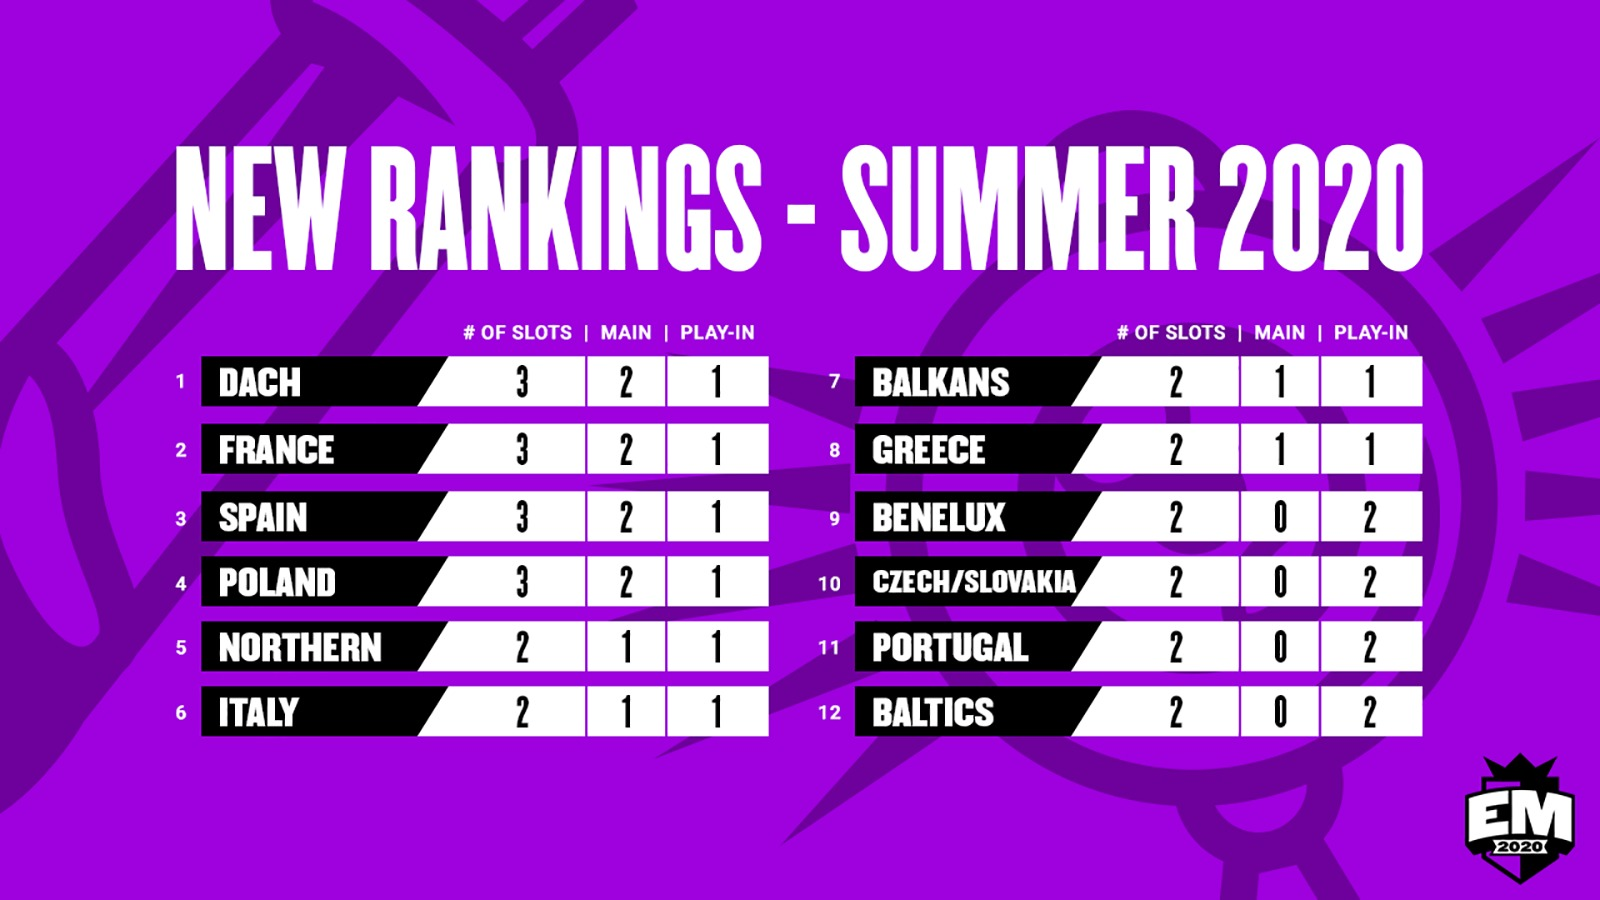 rankings european masters summer 2020